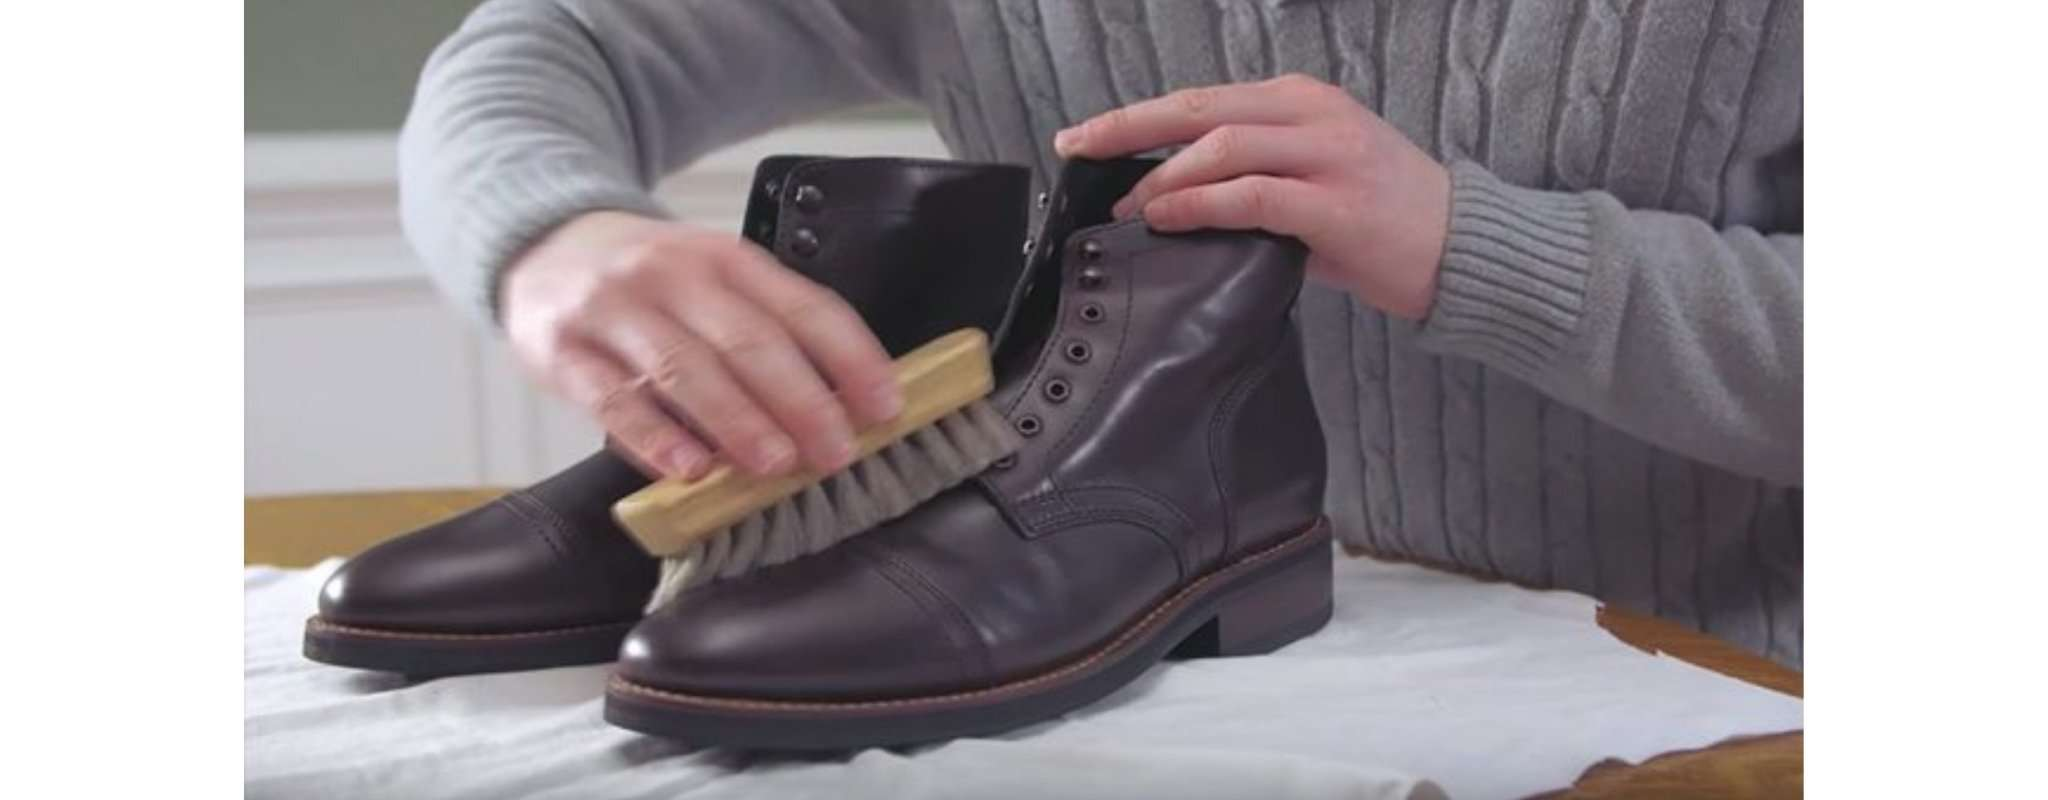 brushing leather shoes to clean